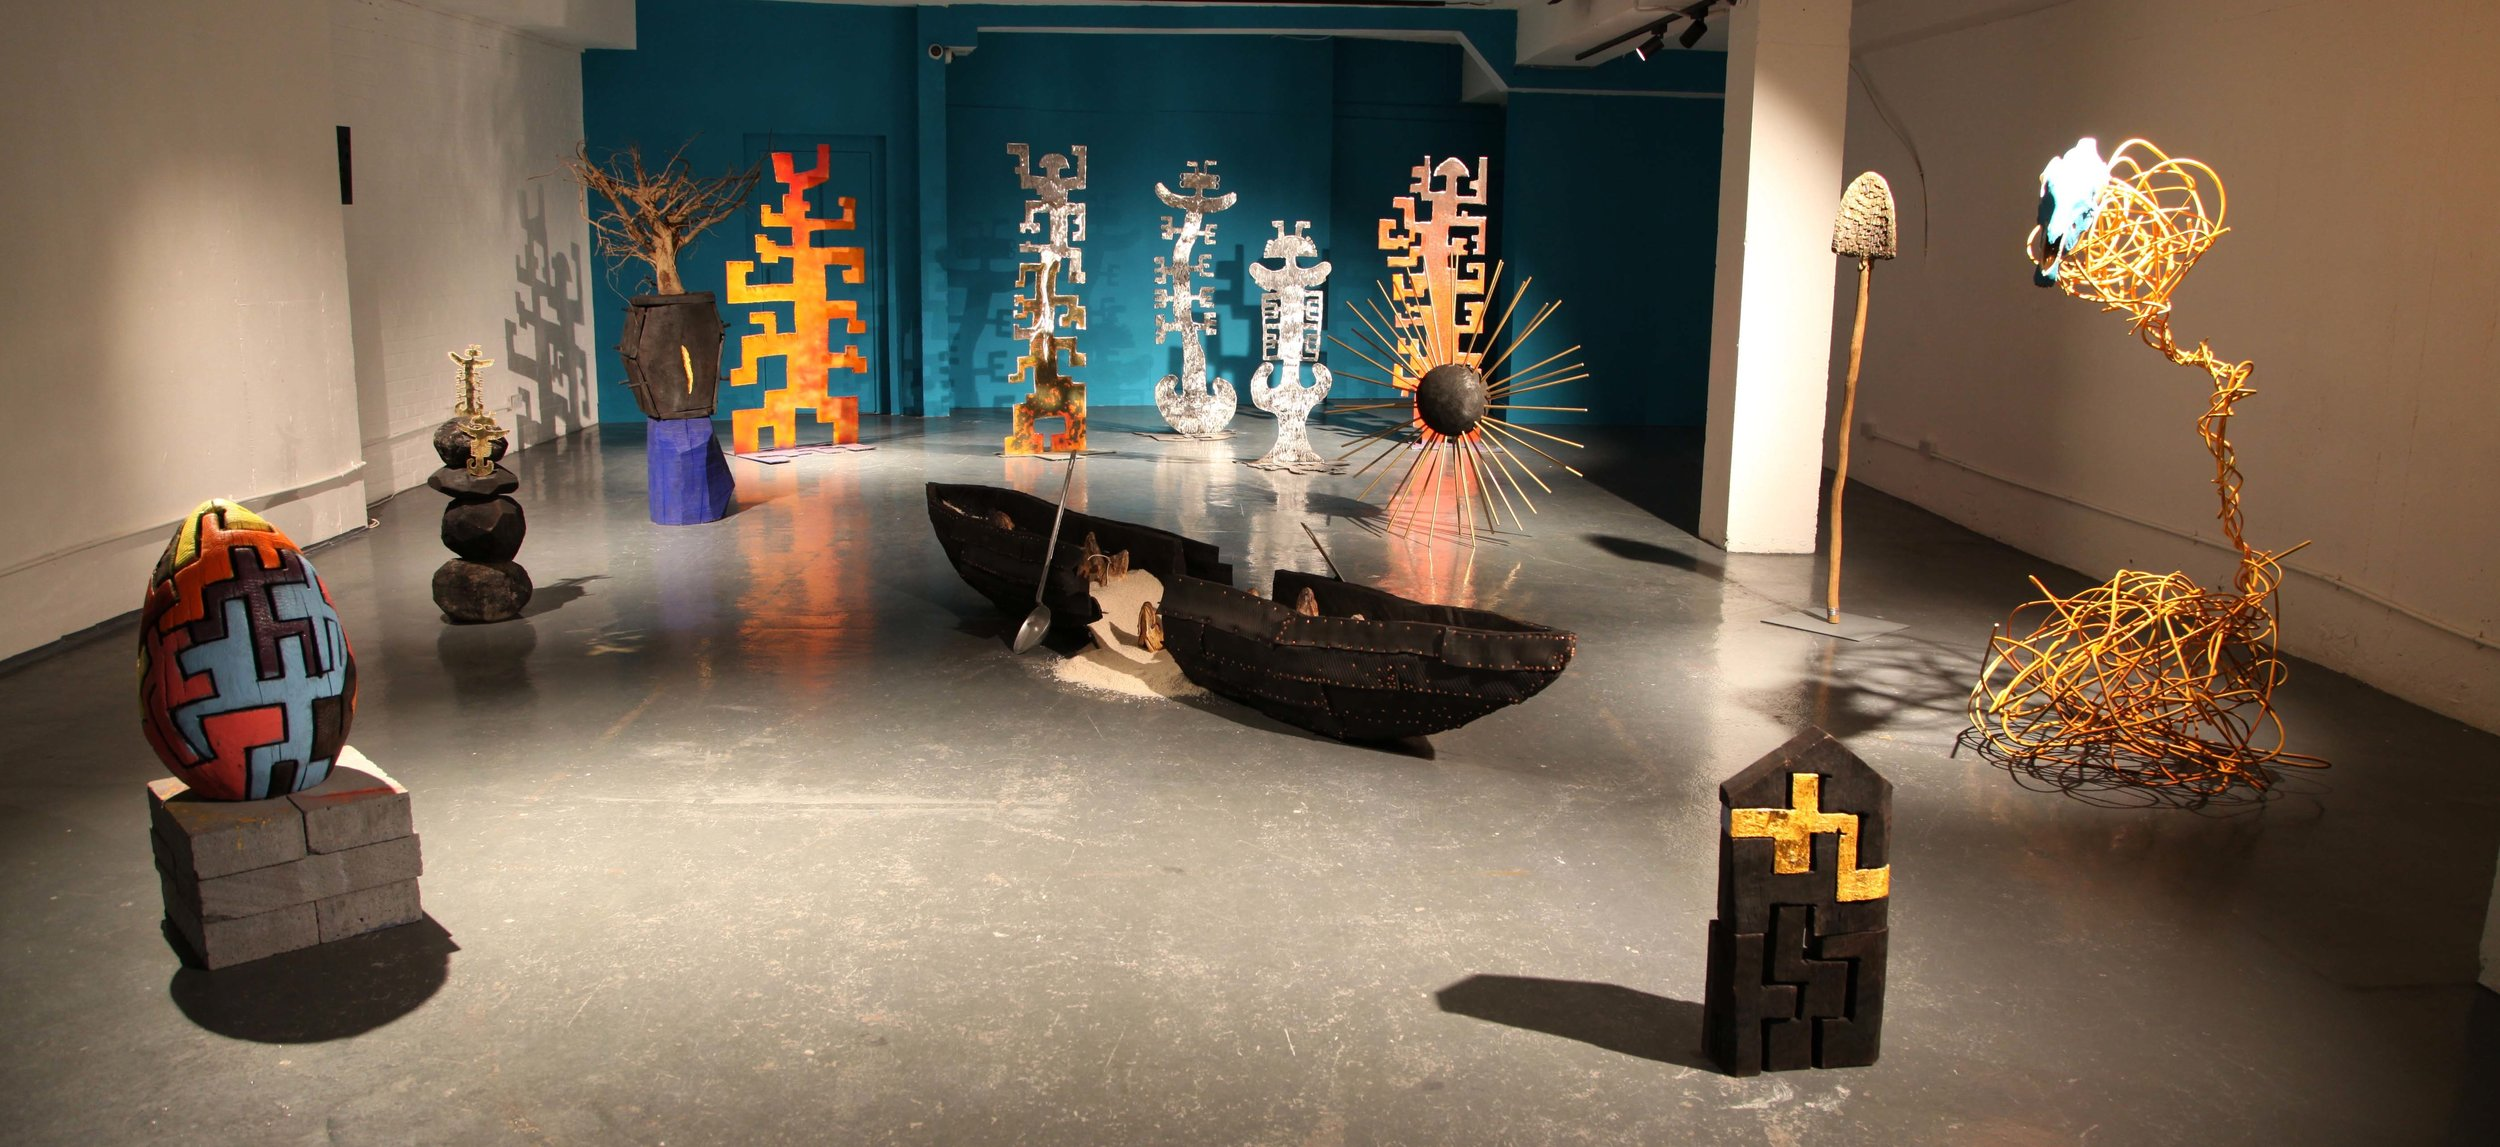 Sol's sculptures in 'From Myth To Earth'